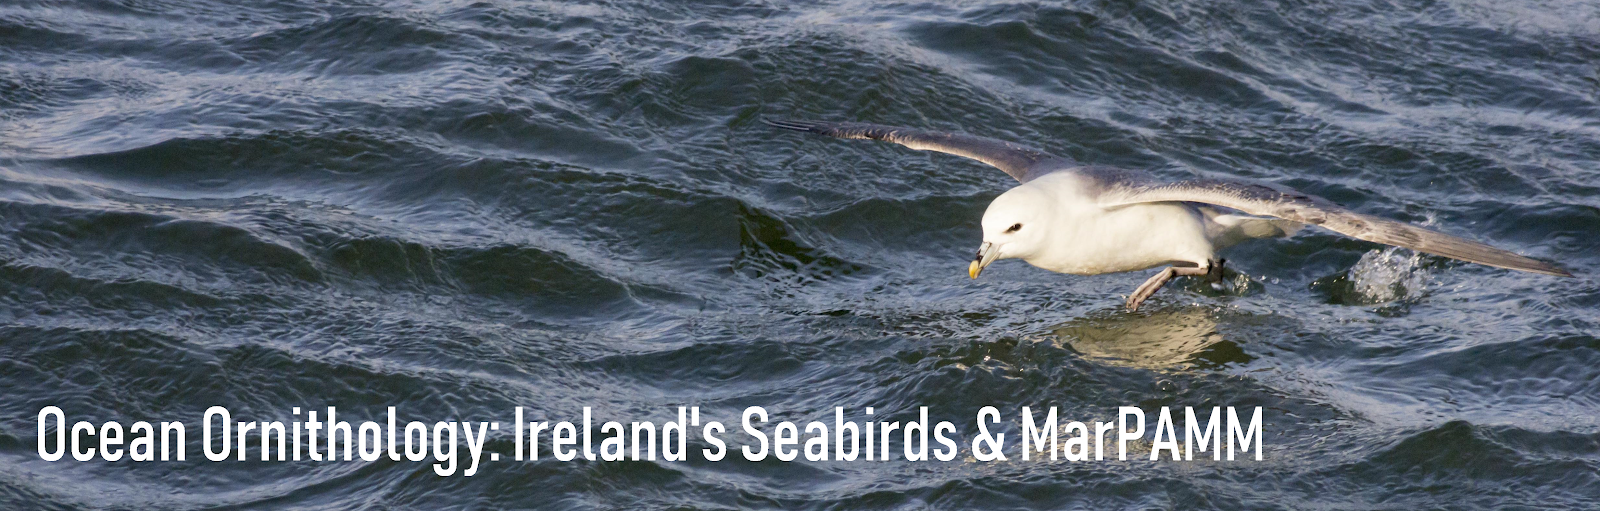 Ocean Ornithology: Ireland's Seabirds and MarPAMM Project